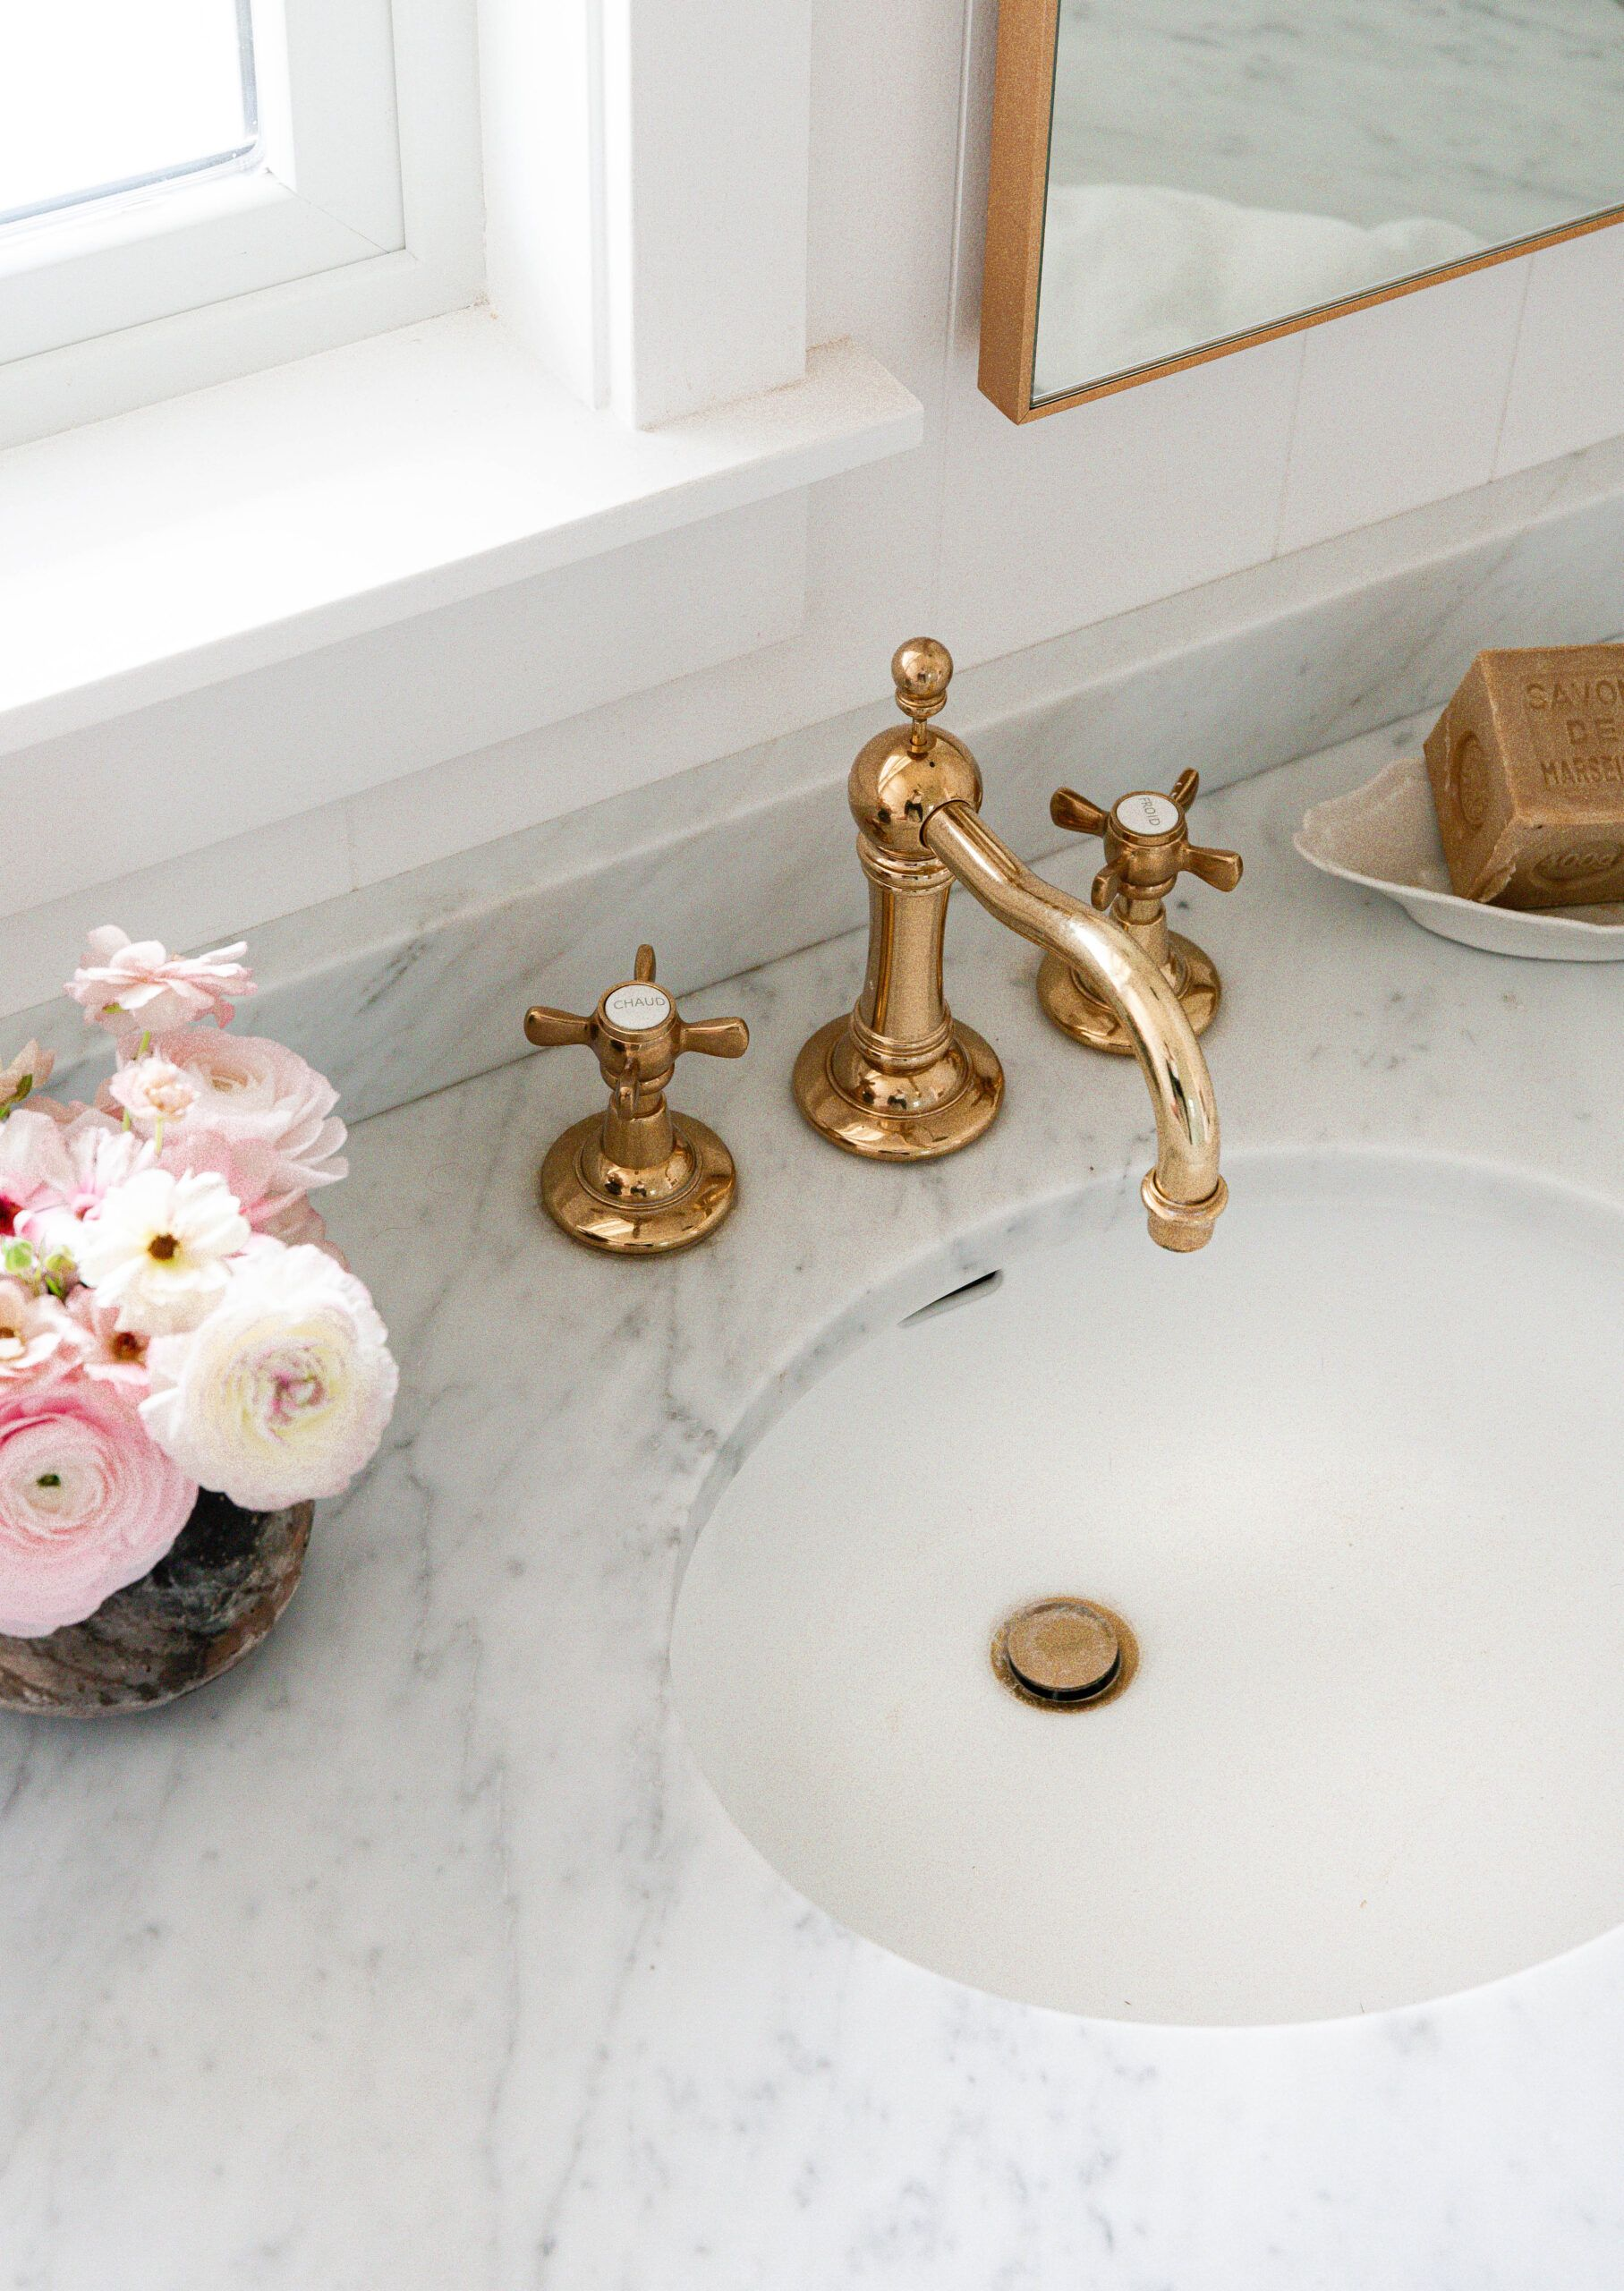 The Best Brass Faucet for your Bathroom